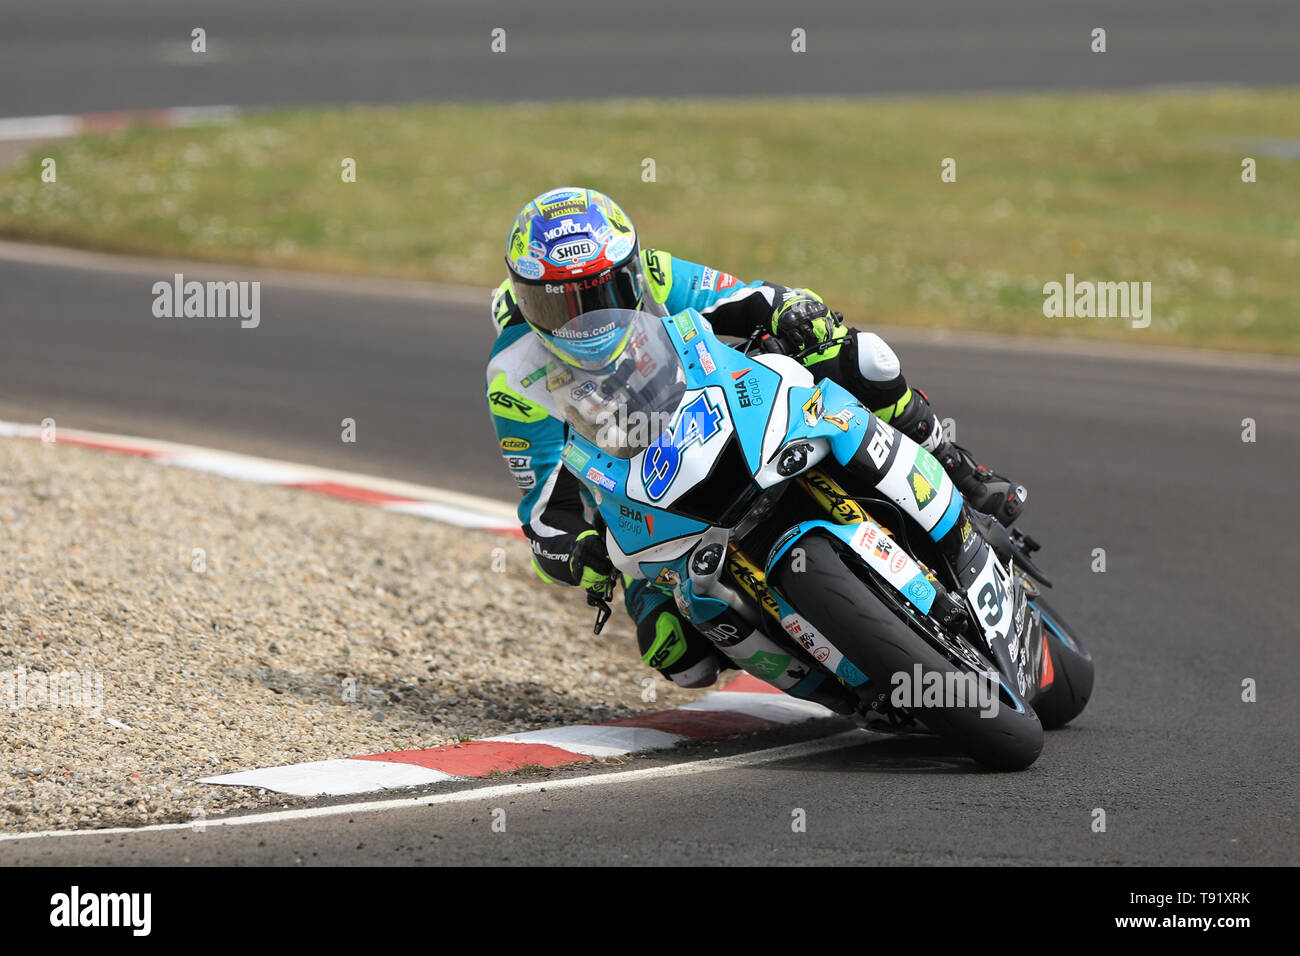 Portrush, Northern Ireland. 16th May, 2019. International North West 200 Motorcycle road racing, Thursday practice and evening racing; Alastair Seeley went 6th fastest on the EHA Racing Yamaha during the SuperSport qualifying session Credit: Action Plus Sports/Alamy Live News - Stock Image